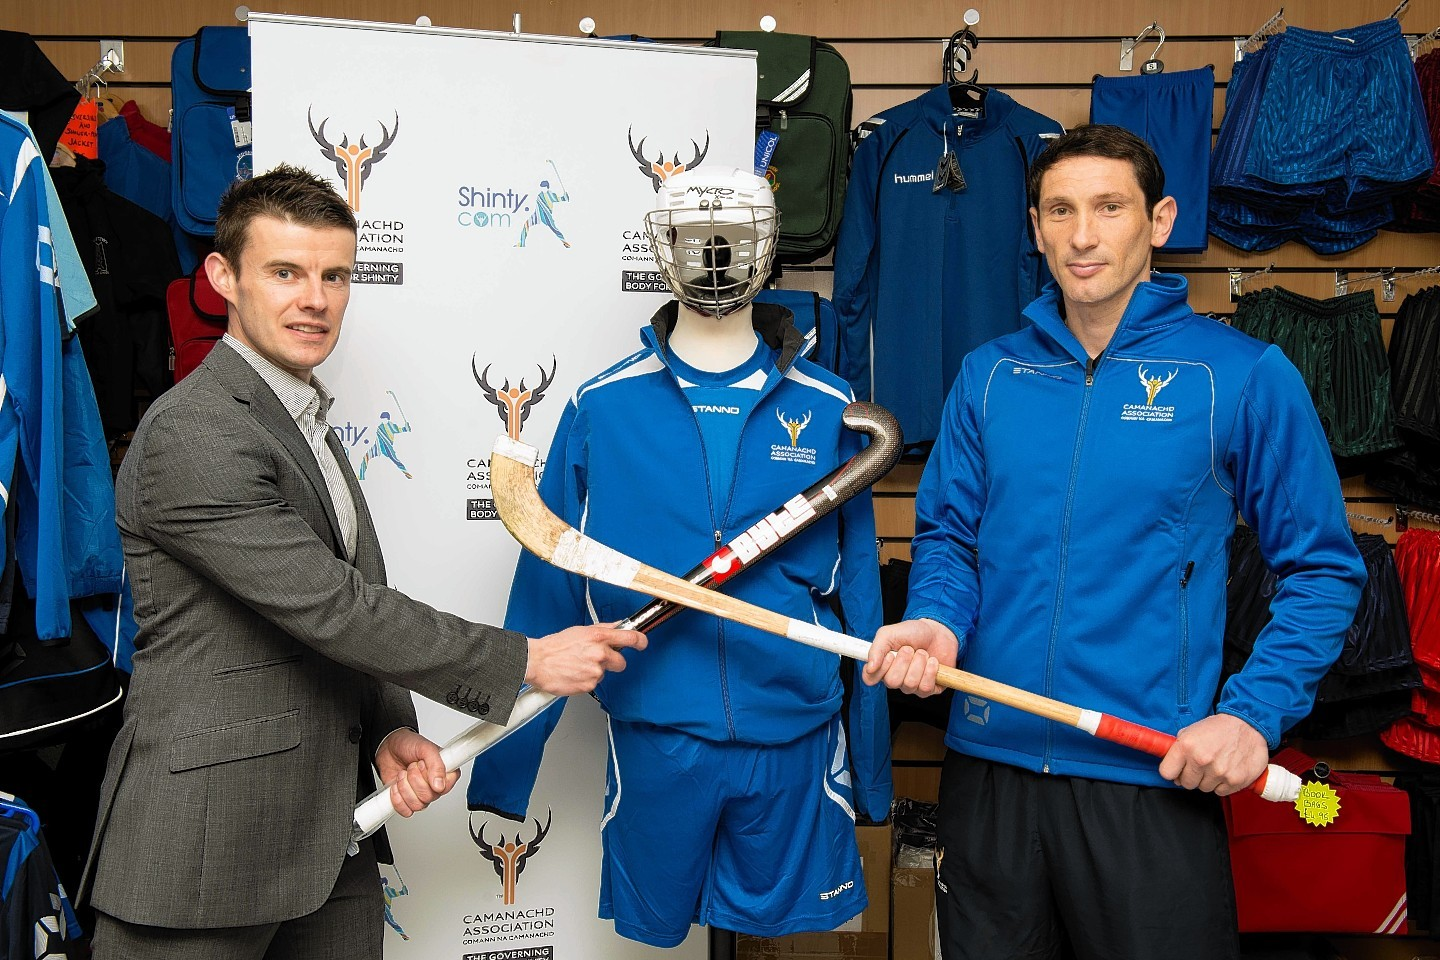 Colin Hill, director of Gilmour Sports, and Ronald Ross MBE, coach of the Scotland shinty team.